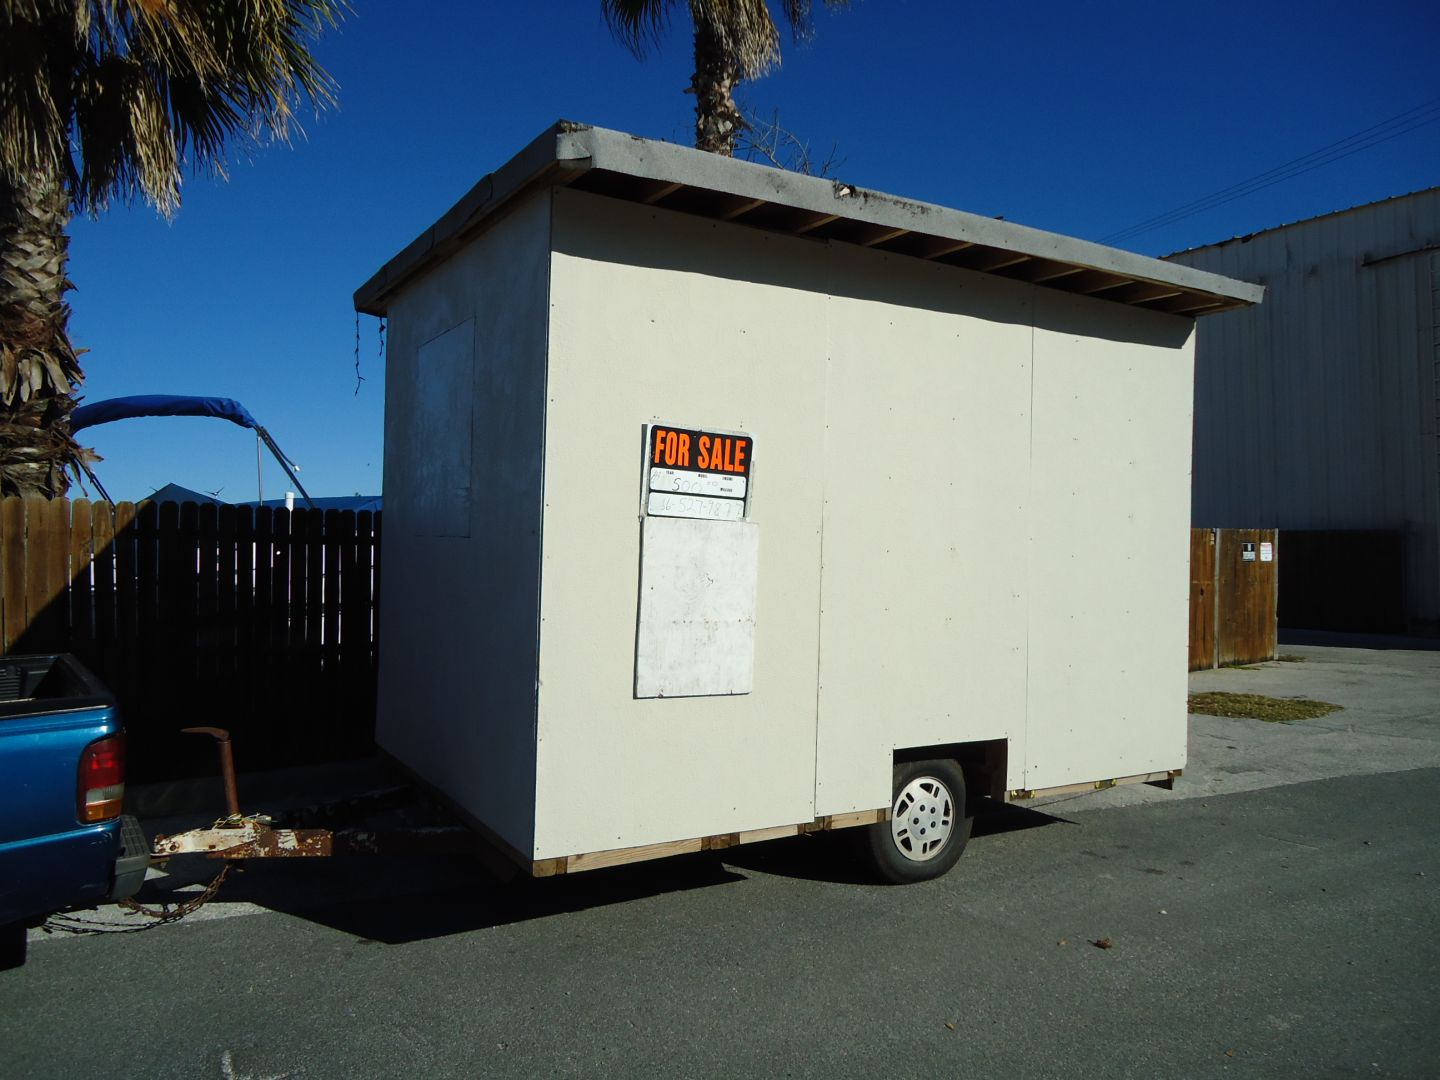 8 foot by 12 foot by 8 foot storage trailer